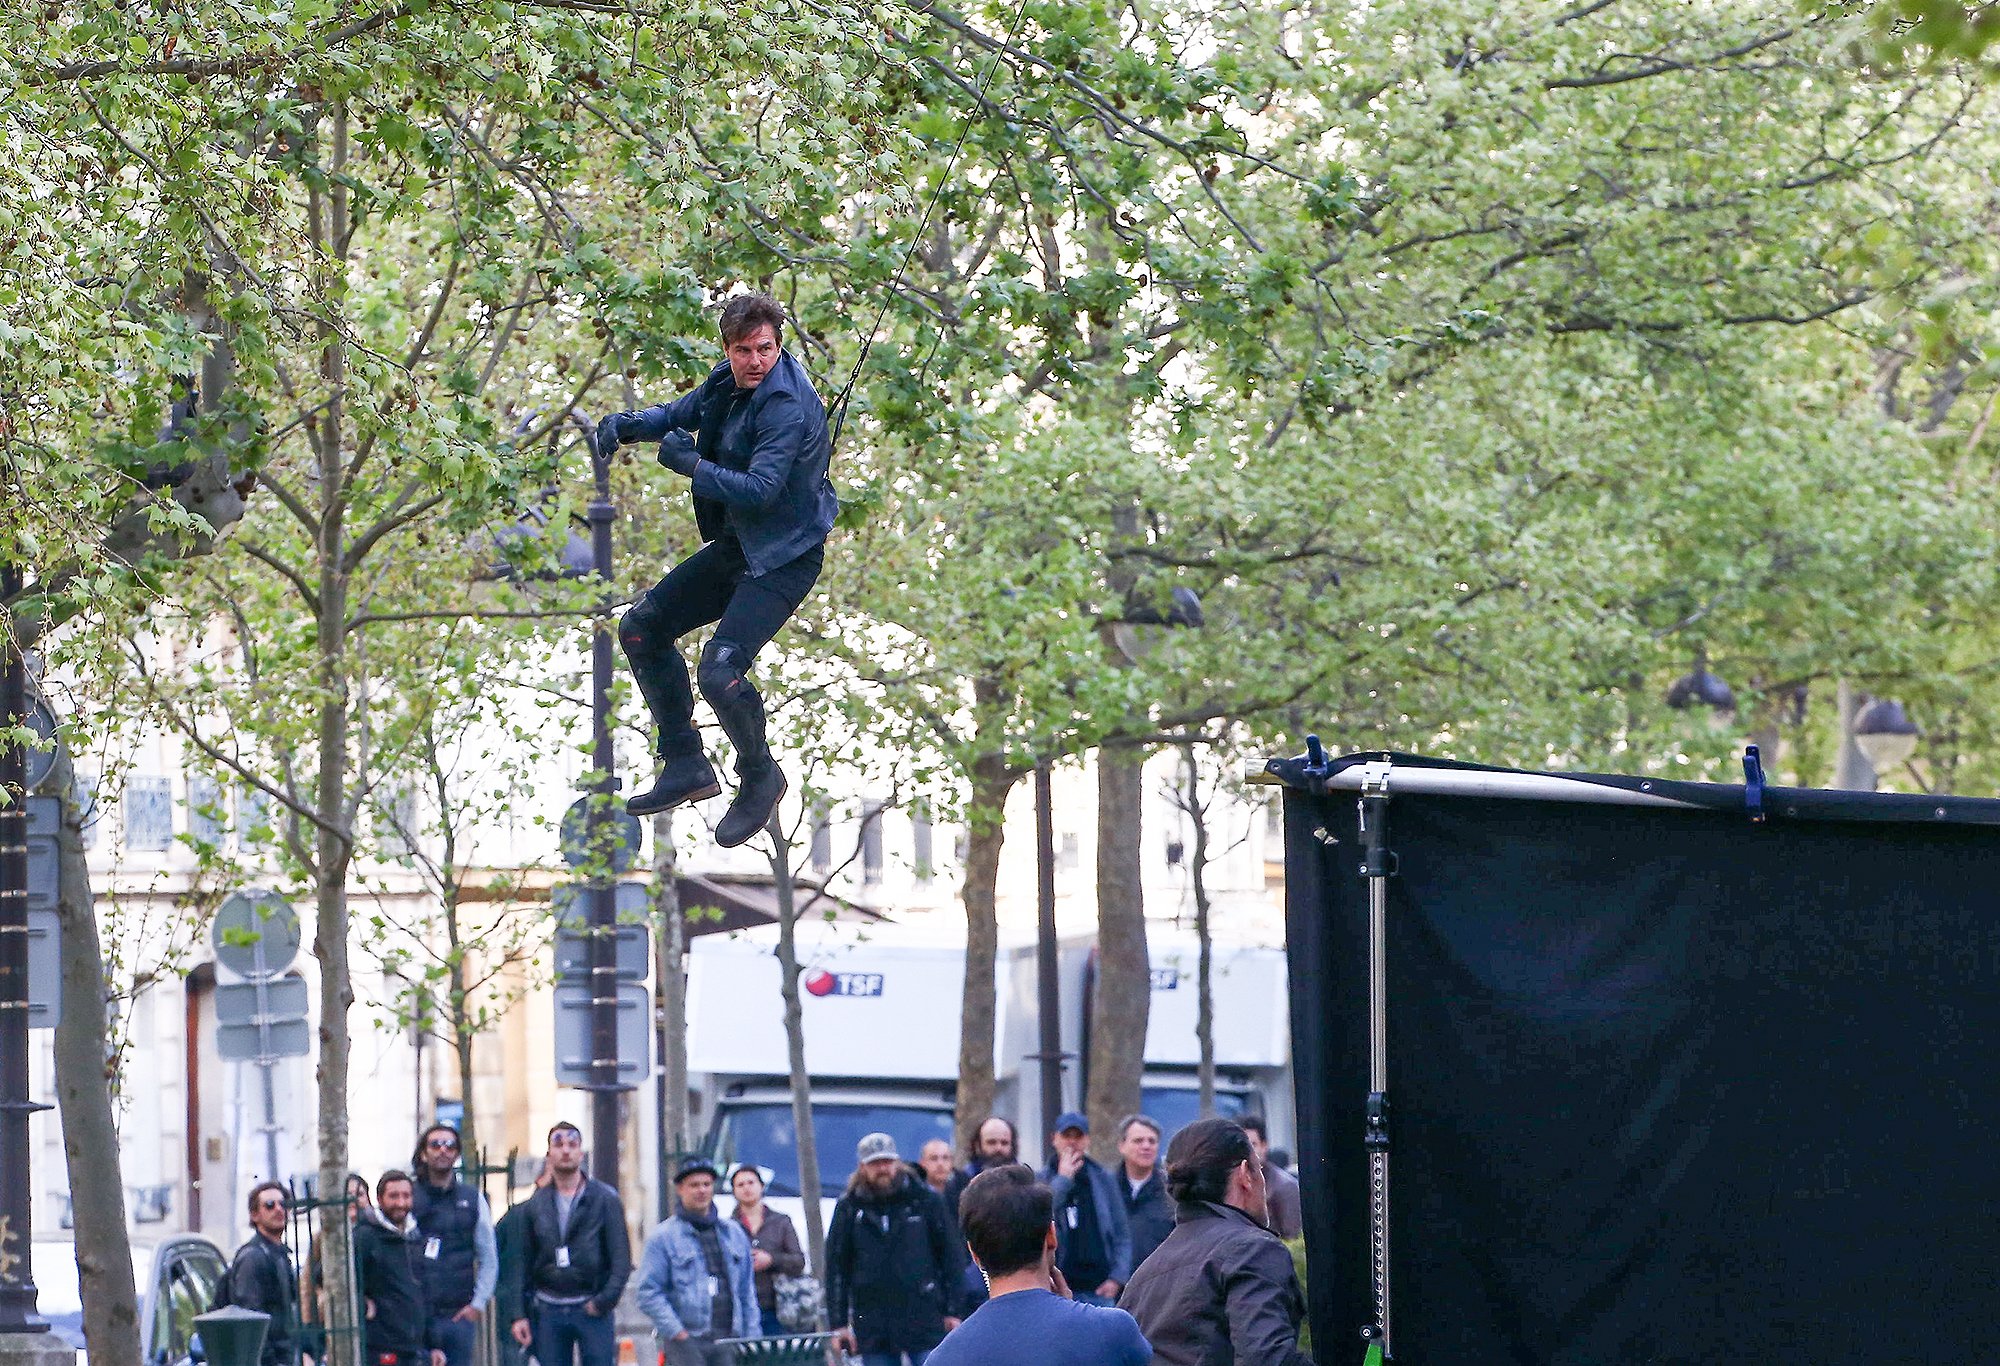 Tom Cruise filming Mission Impossible 6